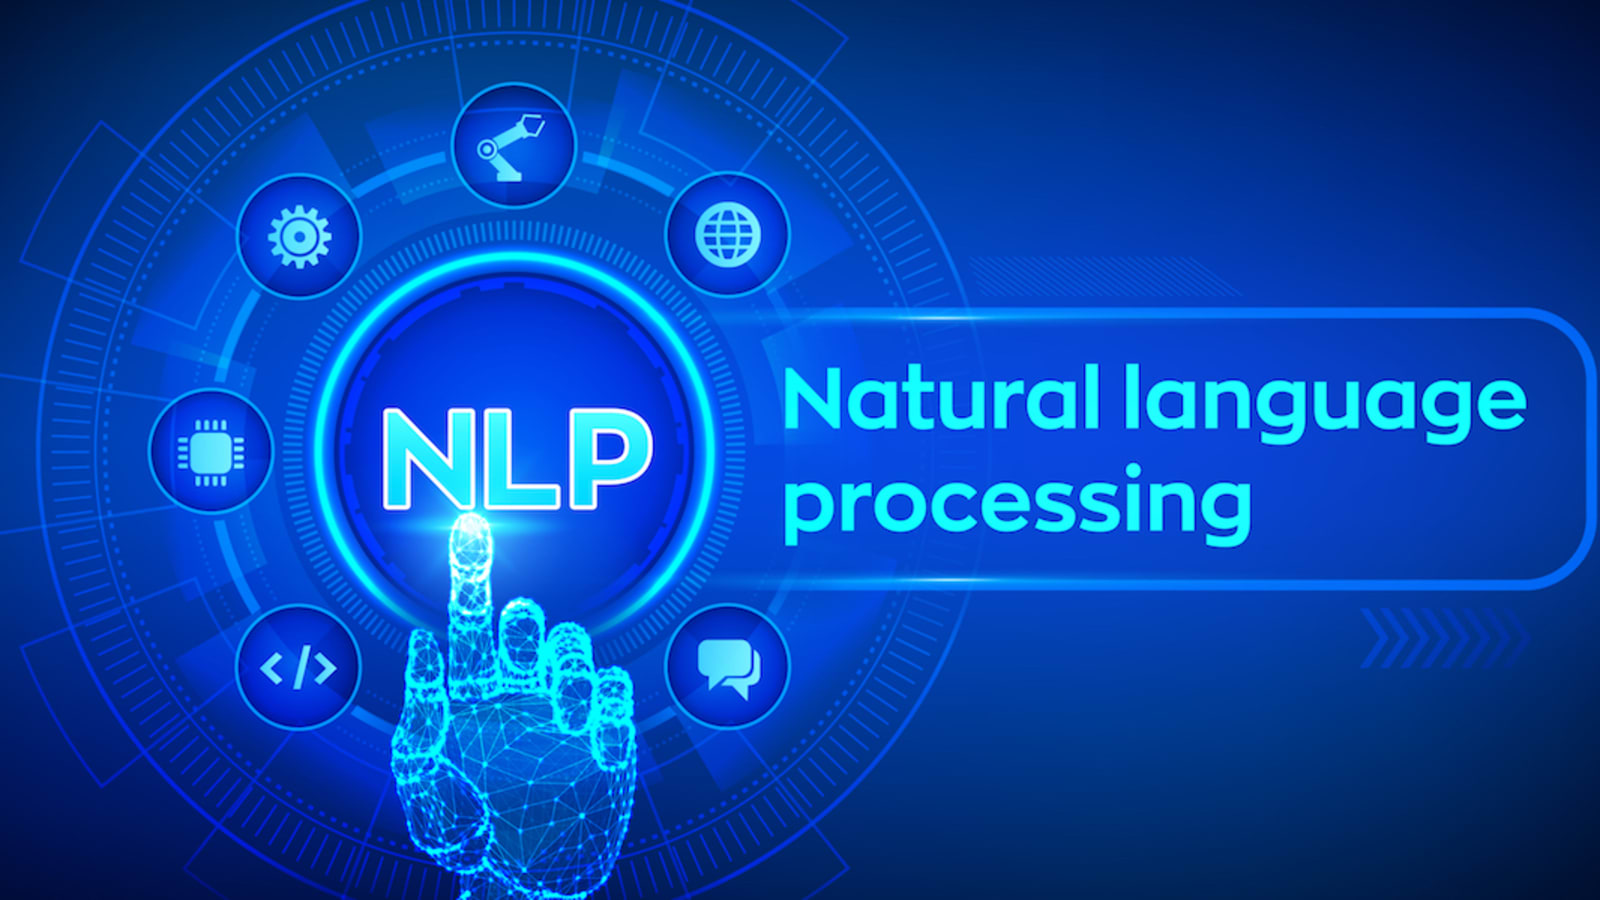 Optimizing Content Discovery using NLP based Search